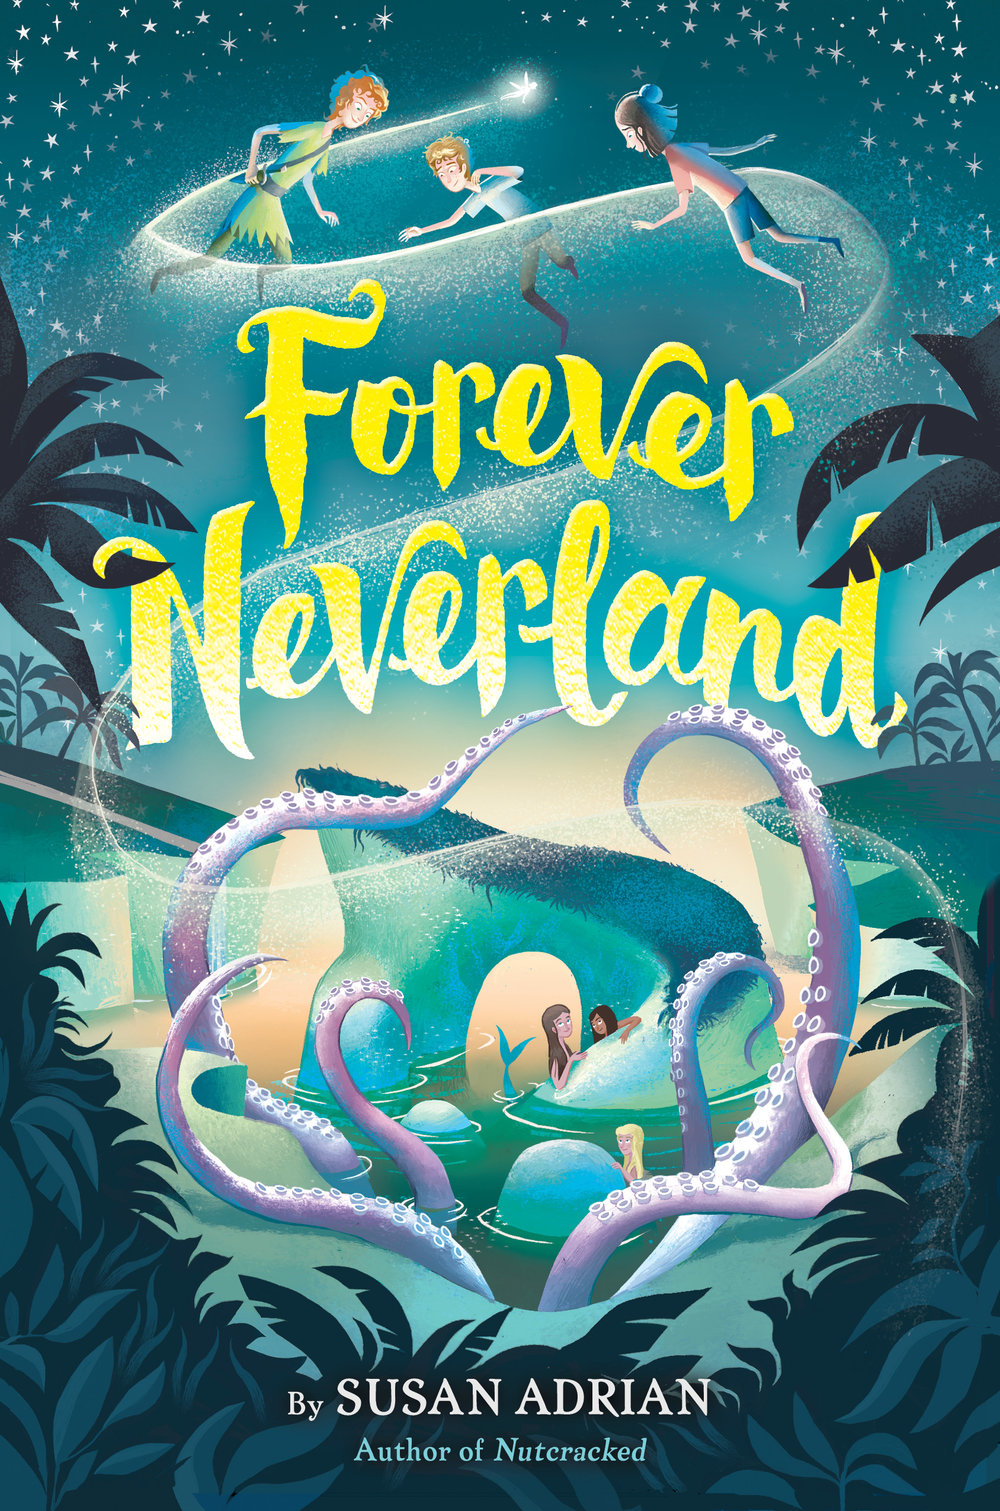 Hi-res Cover FOREVER NEVERLAND.jpg